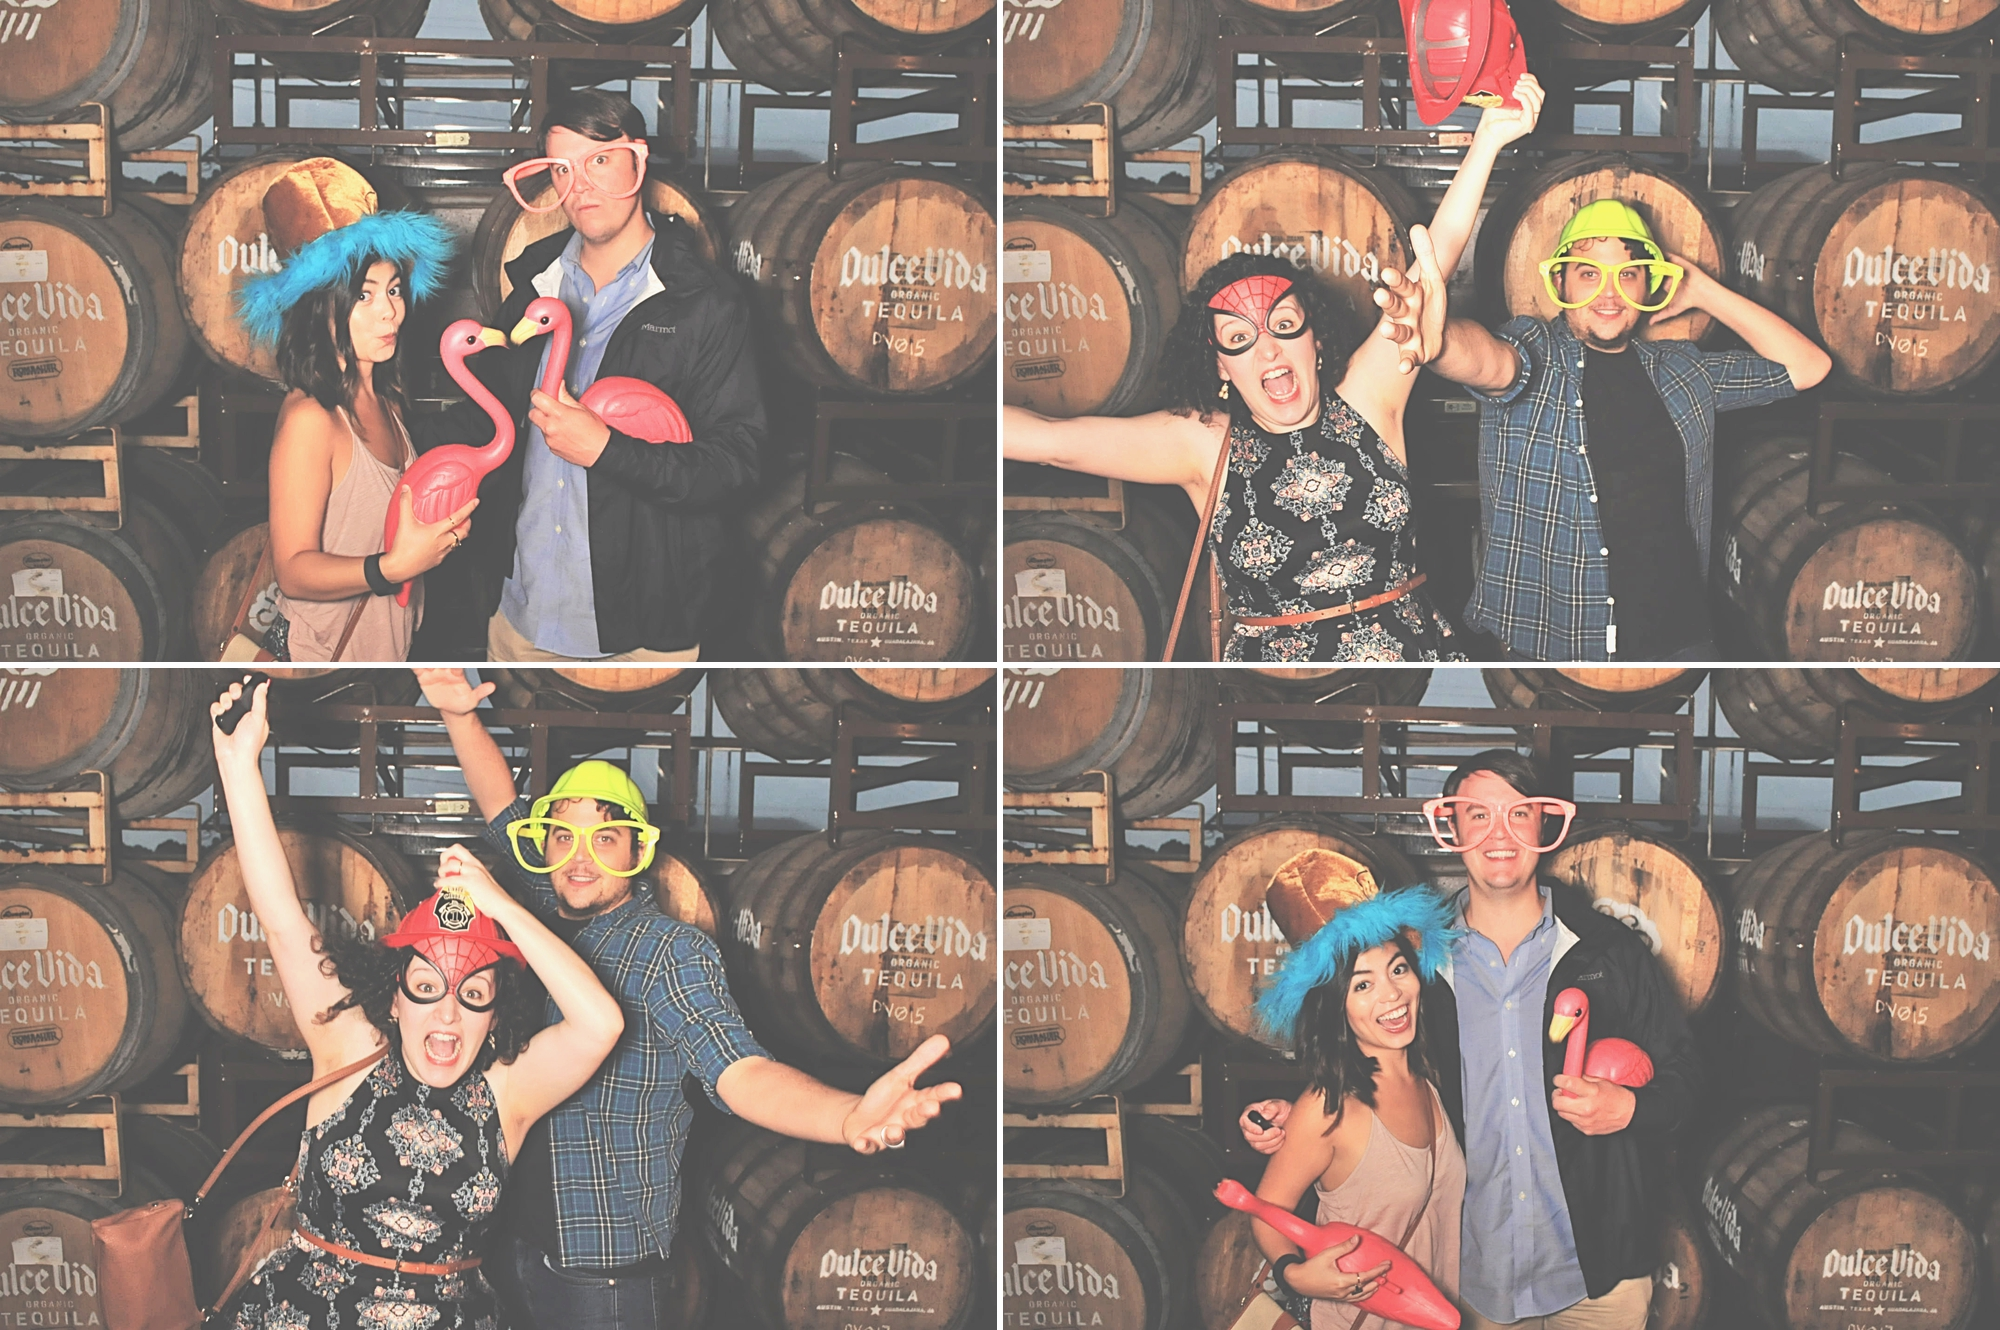 Atlanta Wild Heaven Craft Beers Brewery PhotoBooth - 10-Year Anniversary - RobotBooth 4